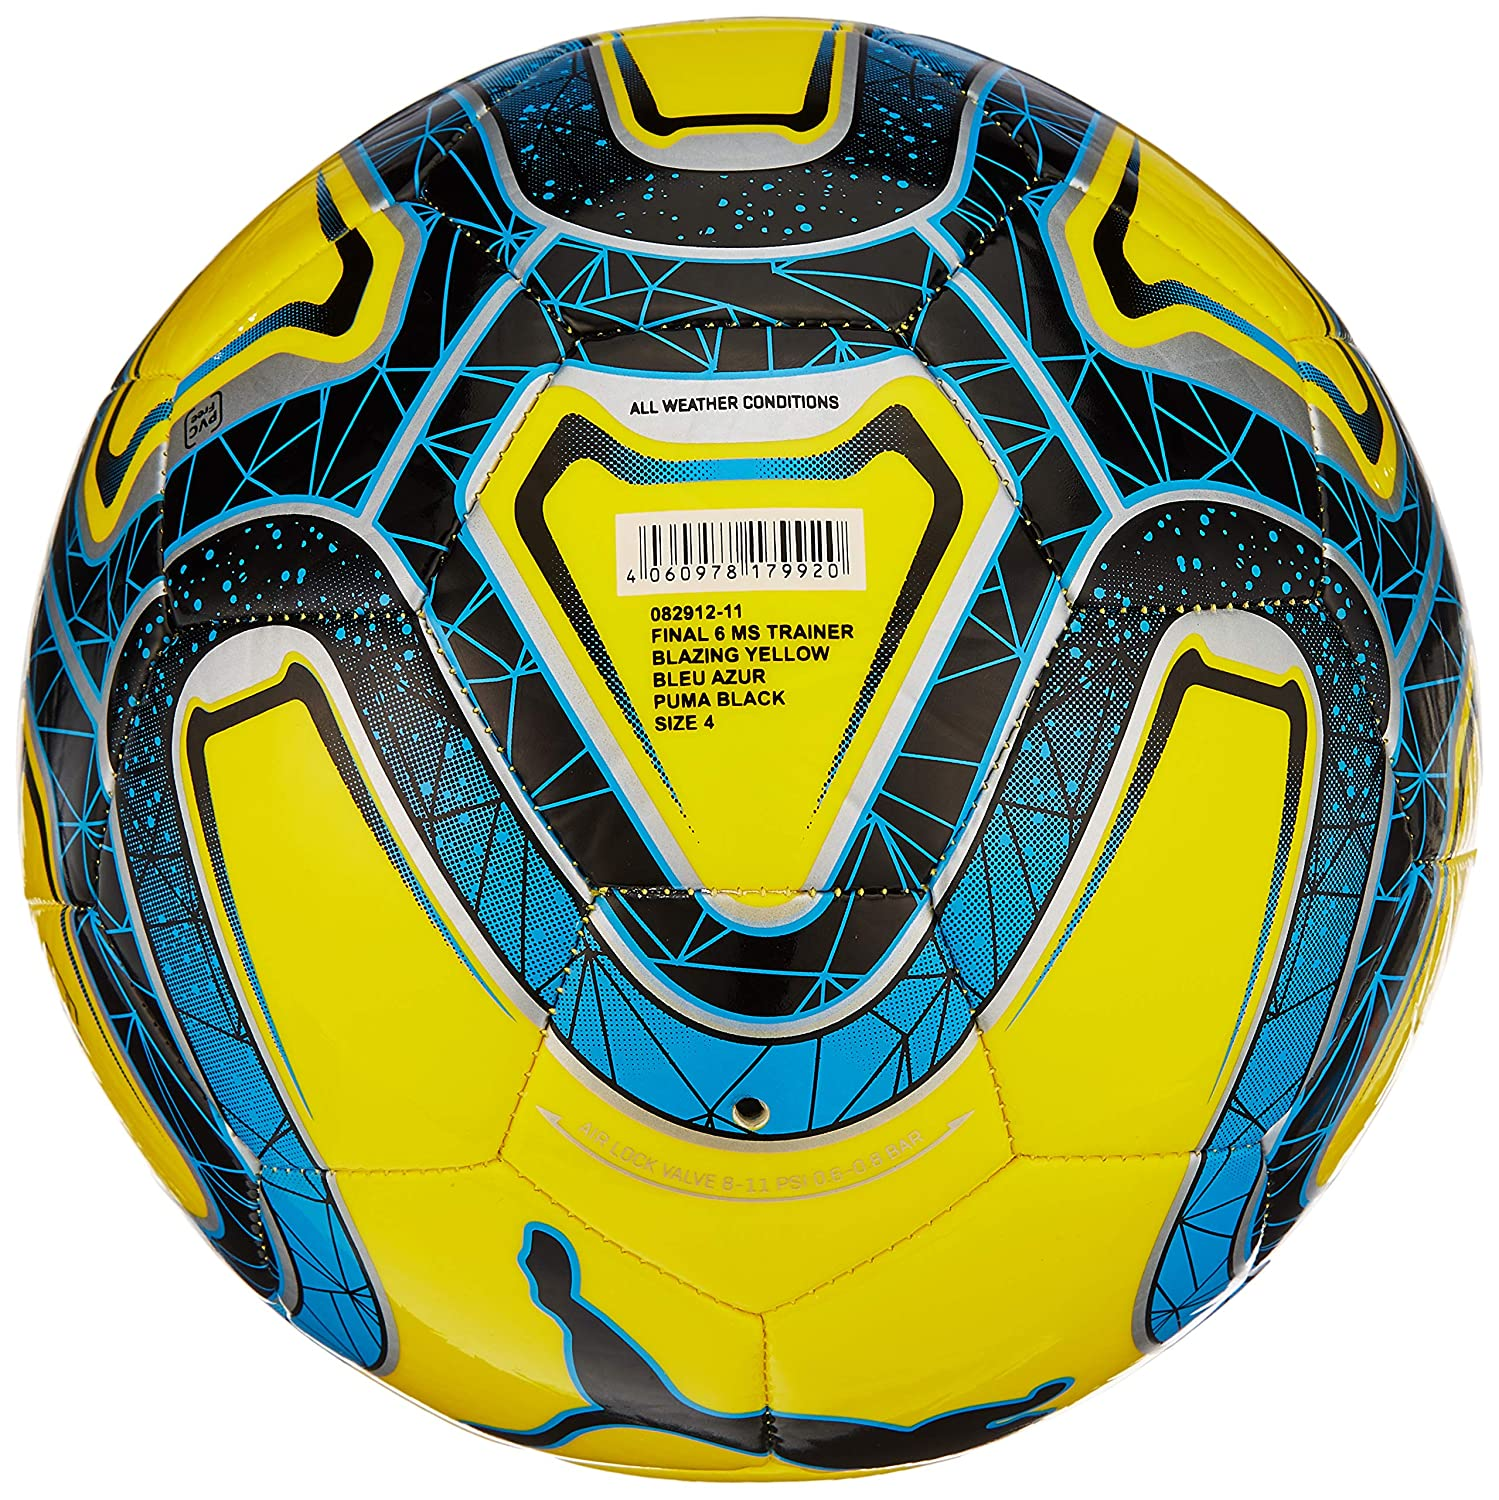 8fbb530057022 Puma Final 6 Ms Trainer Soccer Ball: Amazon.co.uk: Sports & Outdoors